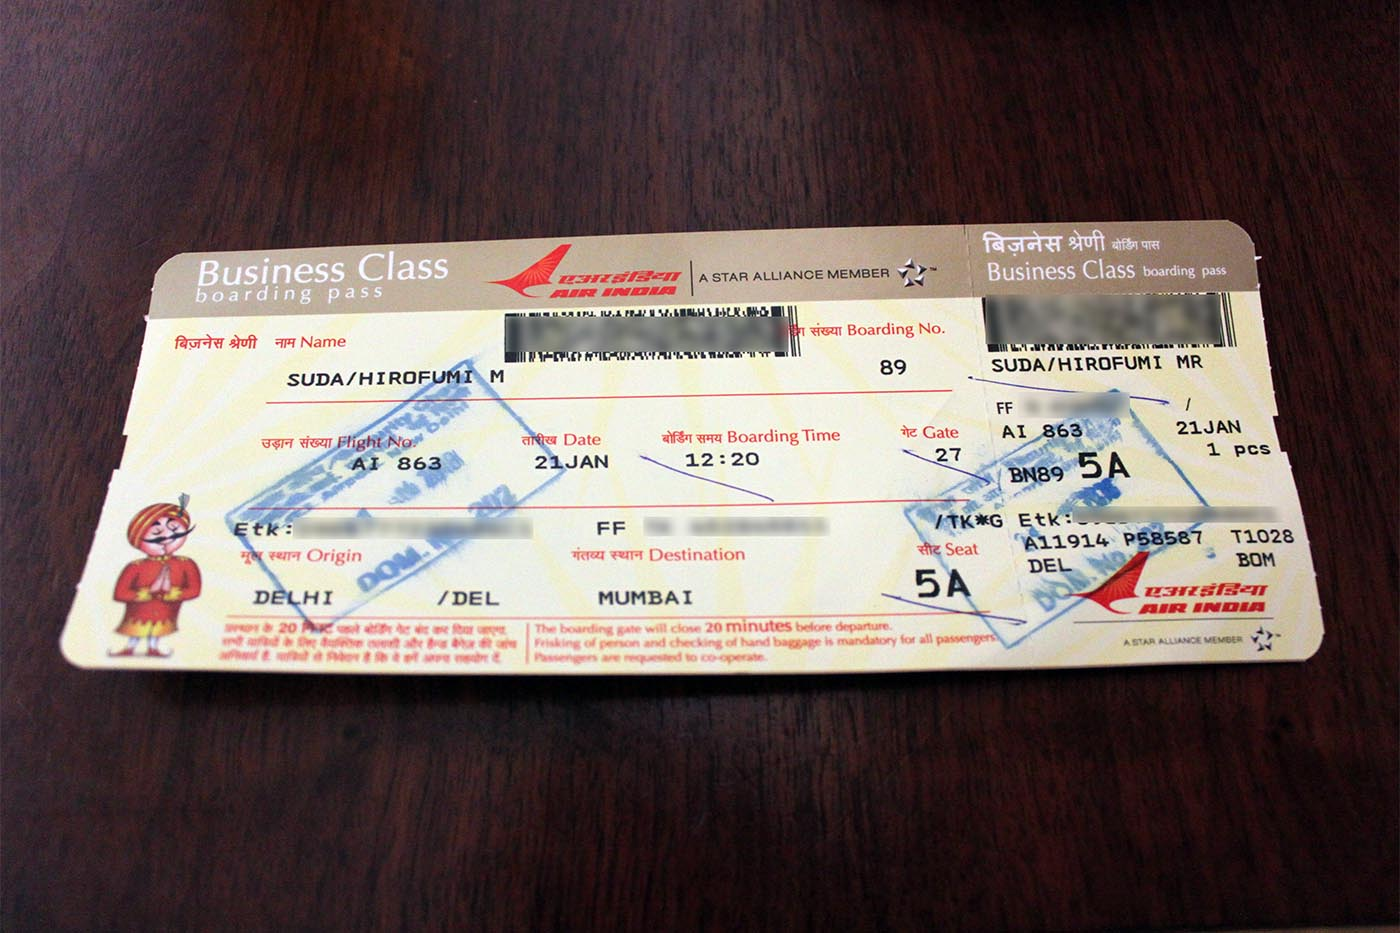 Air India Business Class Boarding Pass for Star Alliance Gold Members